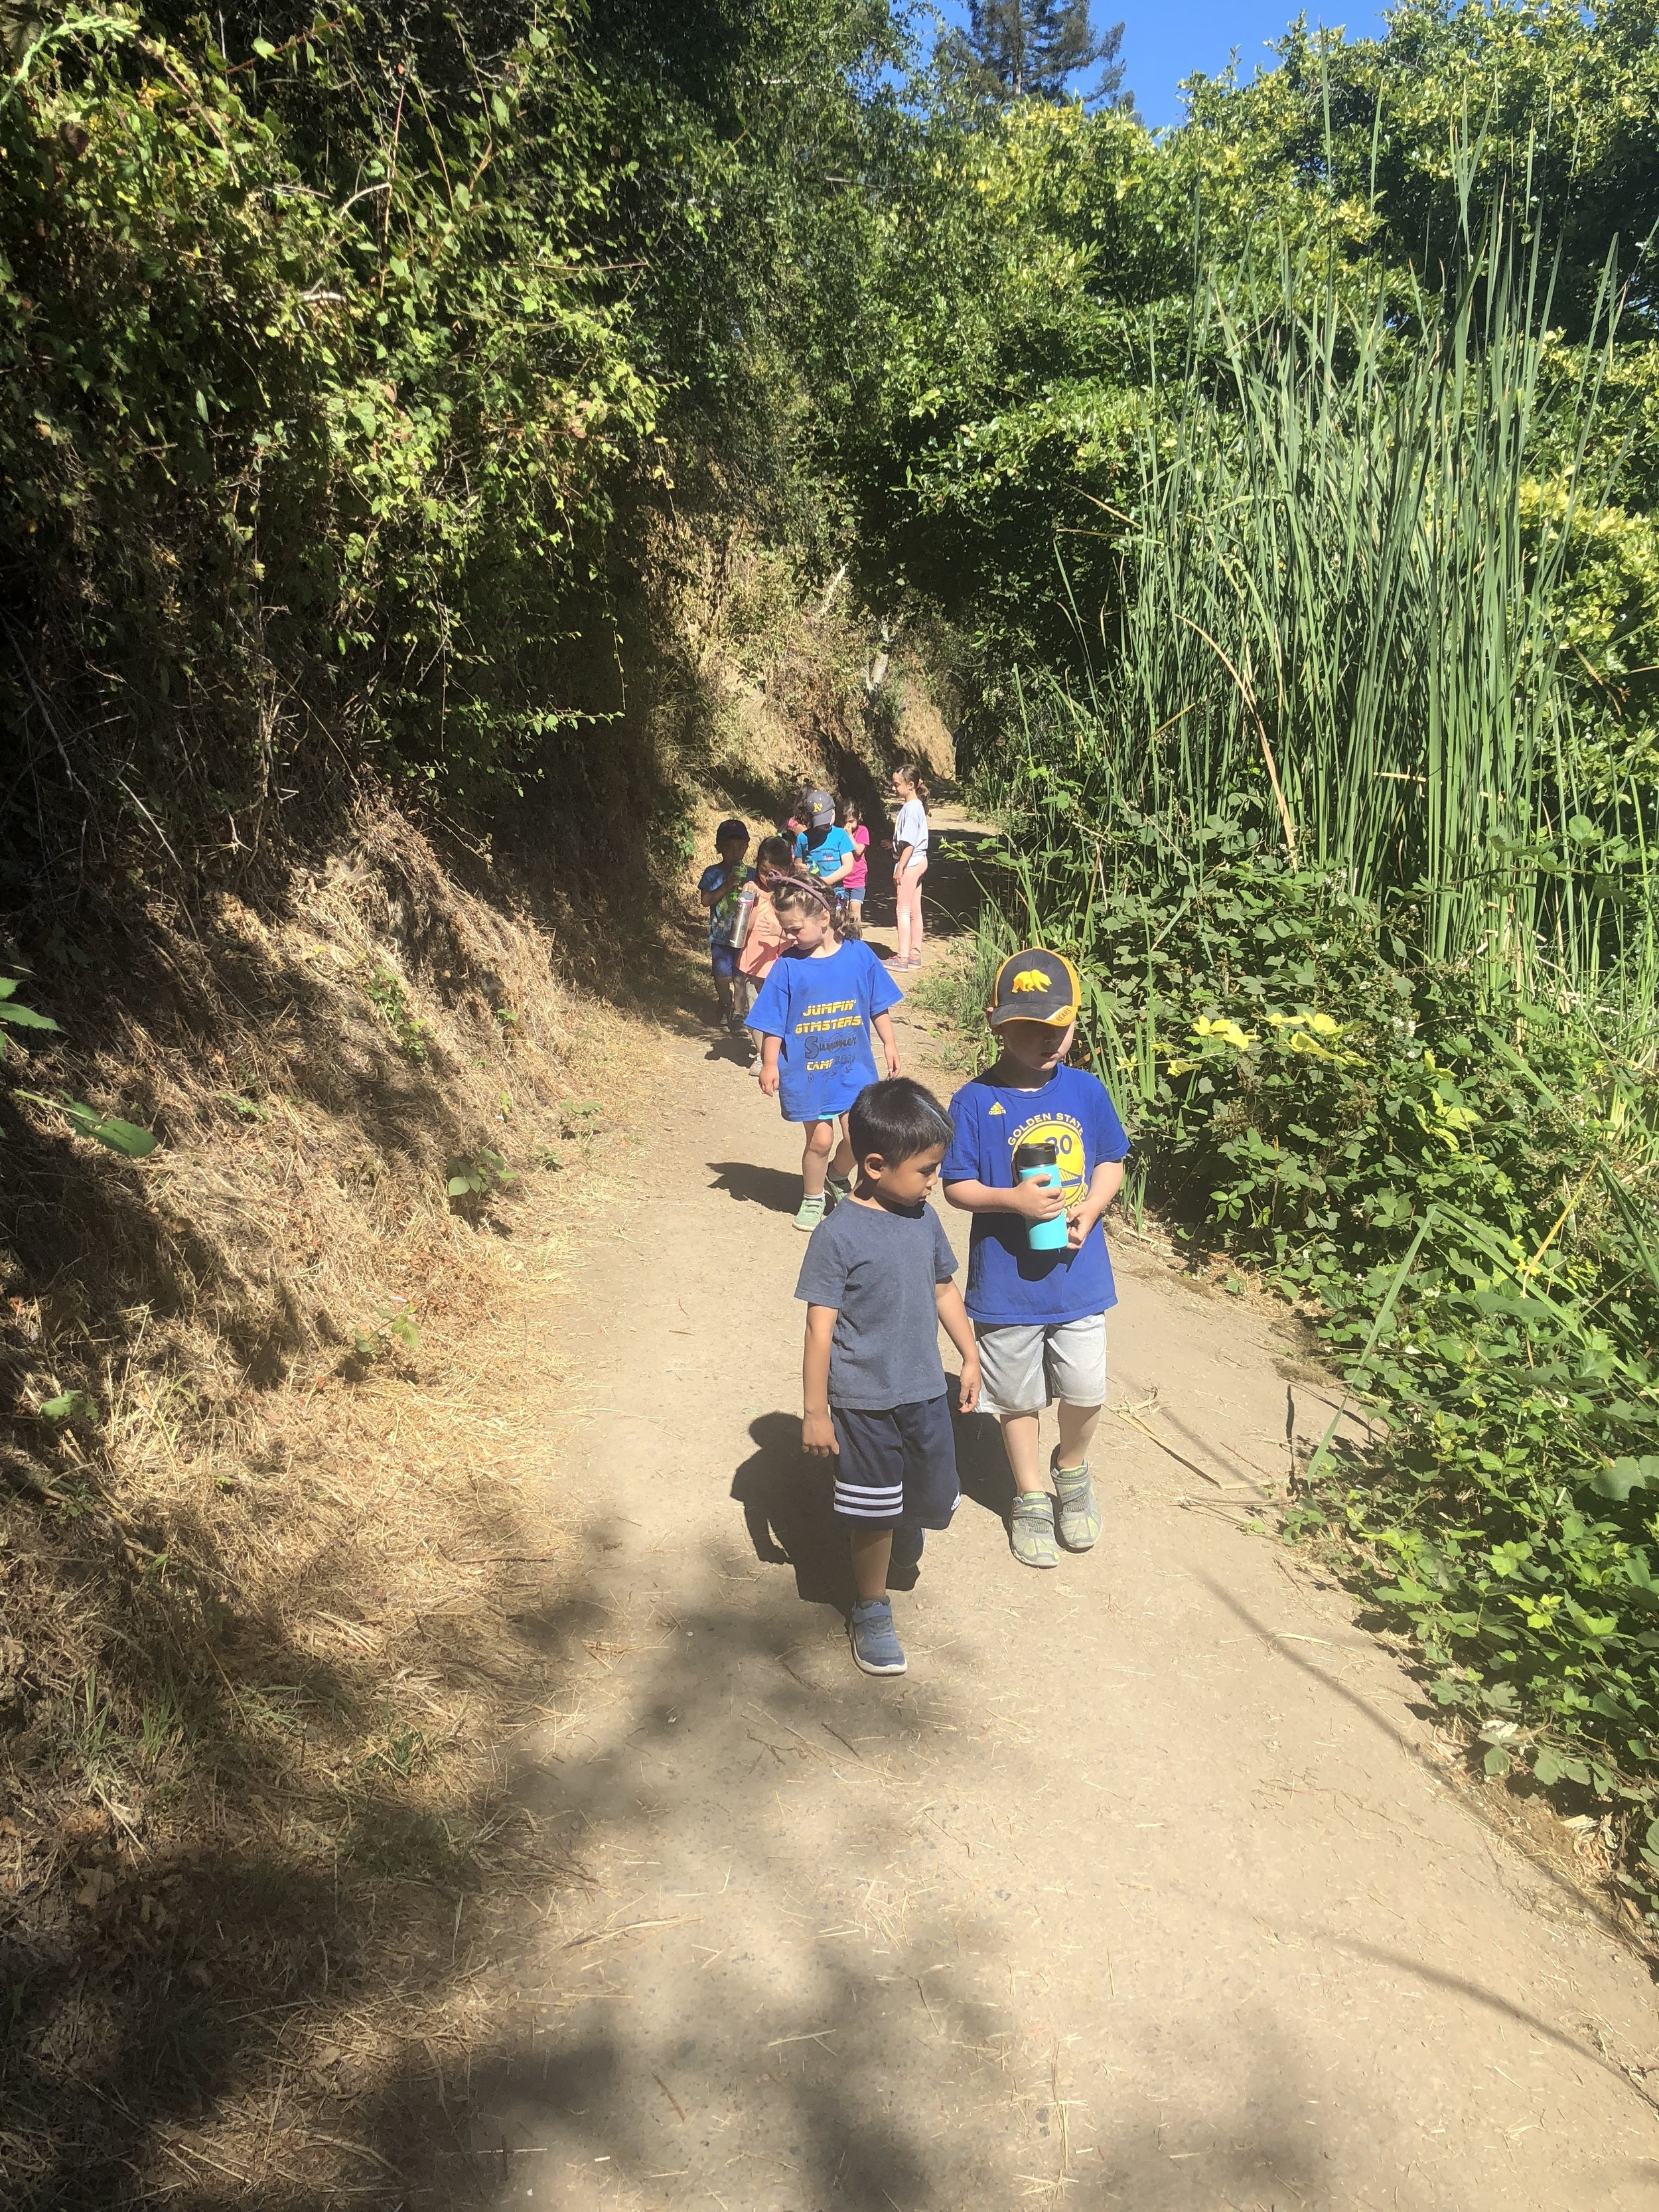 Trails and Outdoor Adventures - Explore the beautiful trails of Lake Temescal Regional Park. Hiking and exploring the various trails and discover living creatures that call Lake Temescal home.